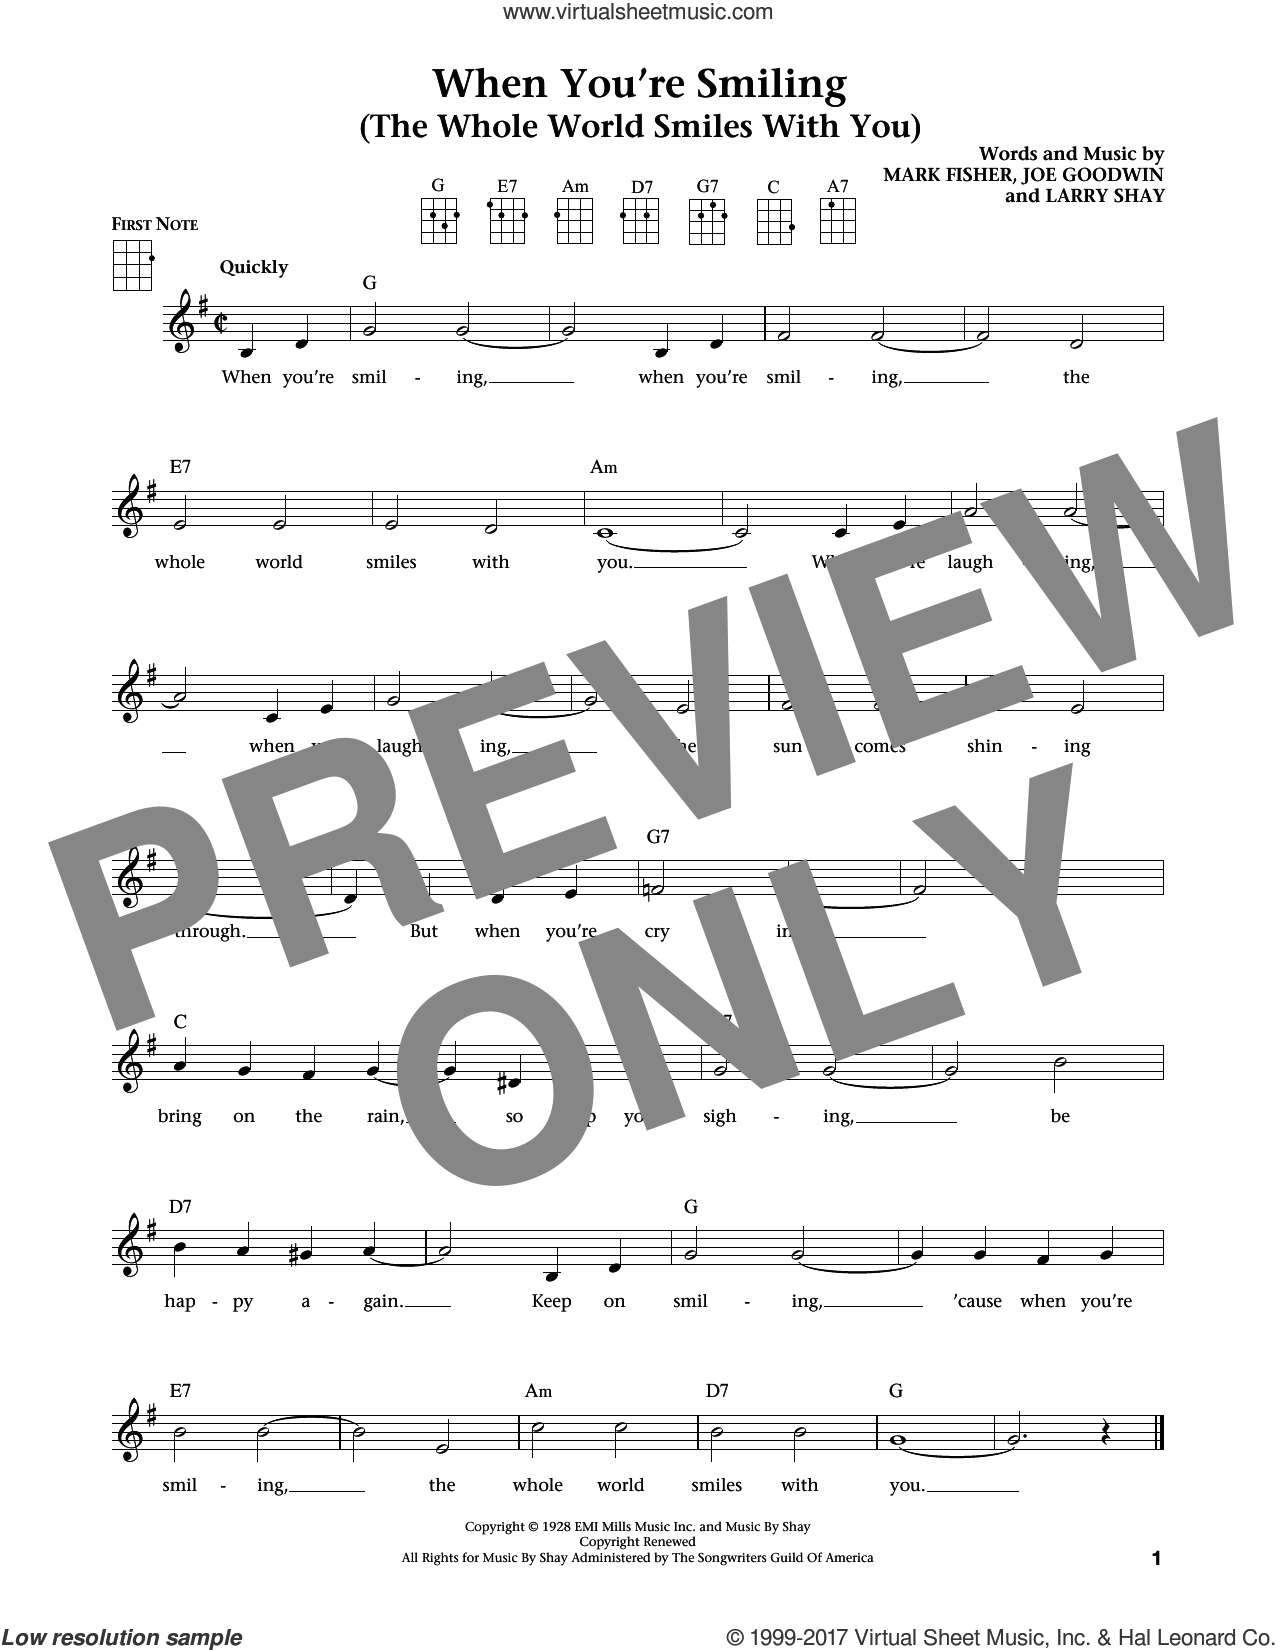 When You're Smiling (The Whole World Smiles With You) (The Daily Ukulele) (arr. Liz and Jim Beloff) sheet music for ukulele by Mark Fisher, Jim Beloff, Liz Beloff, Joe Goodwin and Larry Shay, intermediate skill level